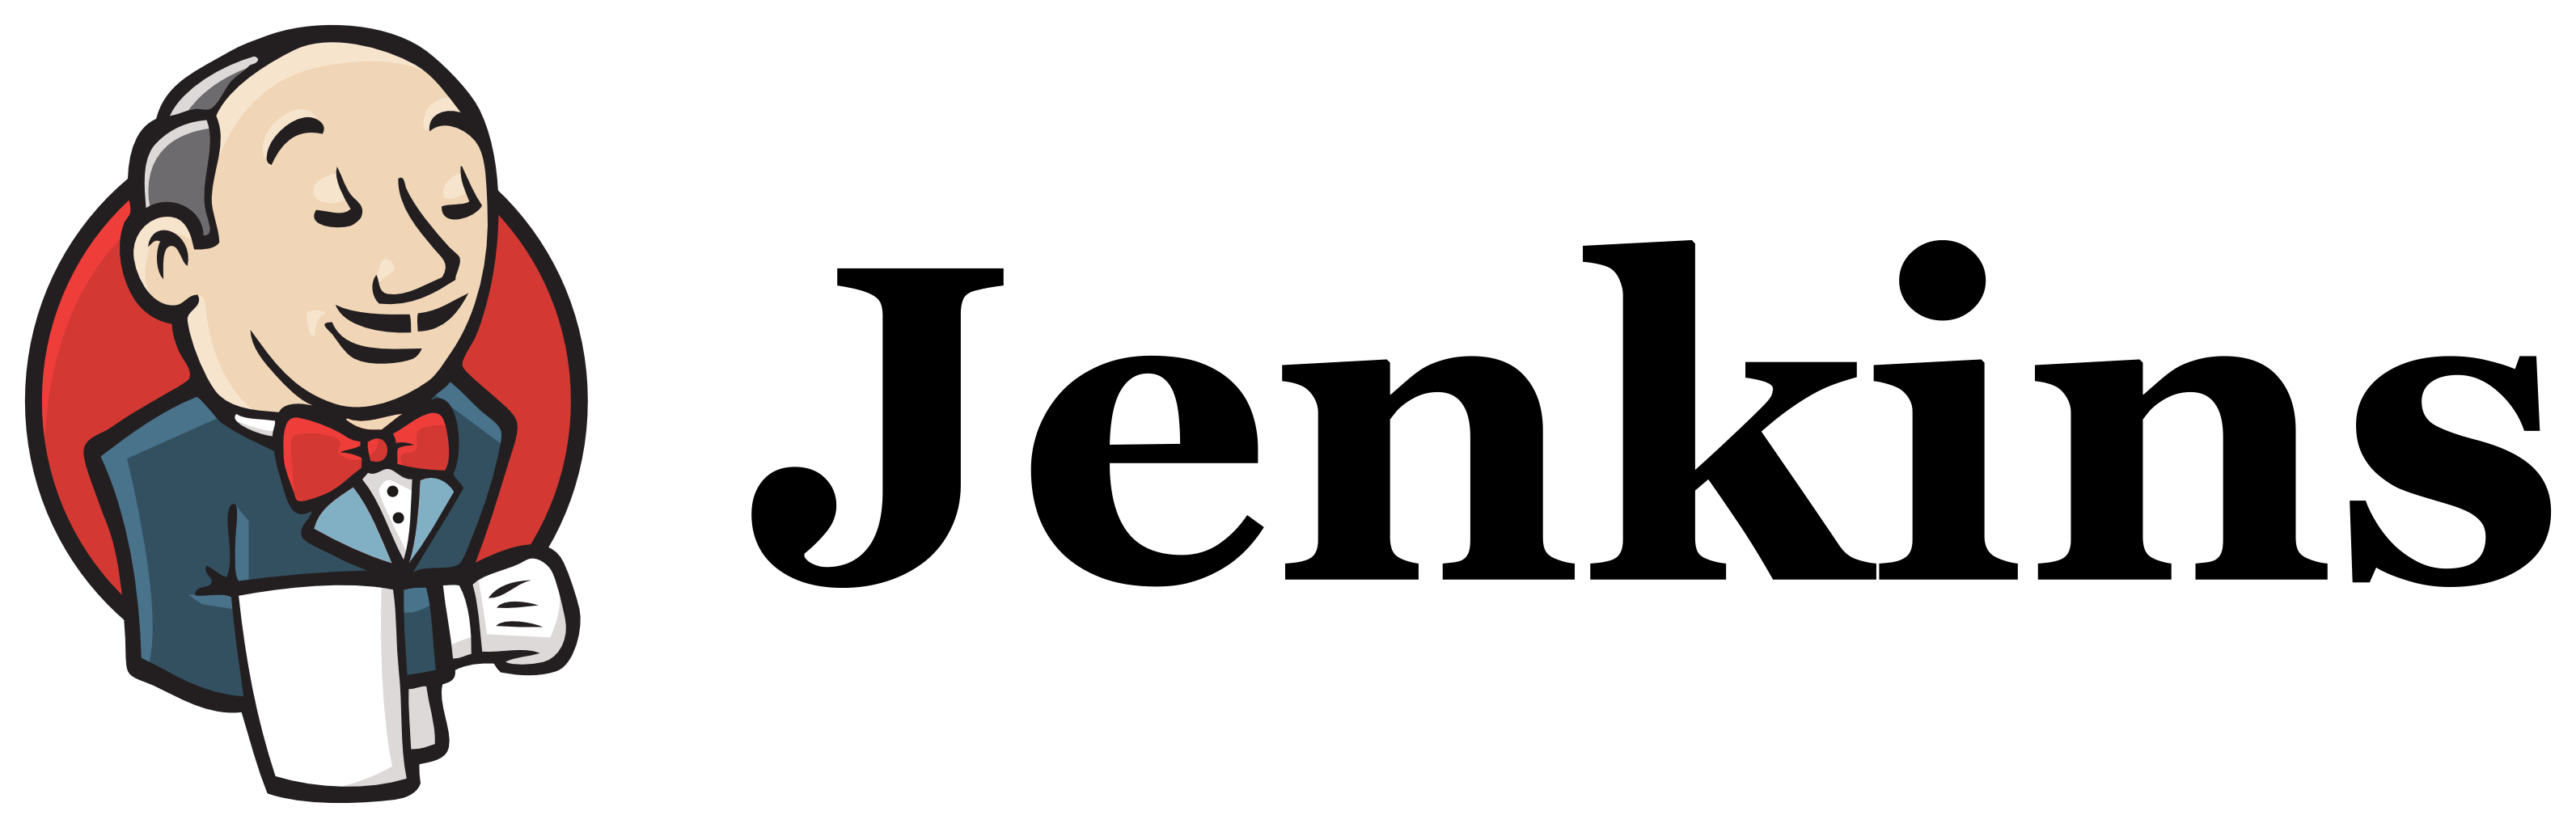 logo+title.png